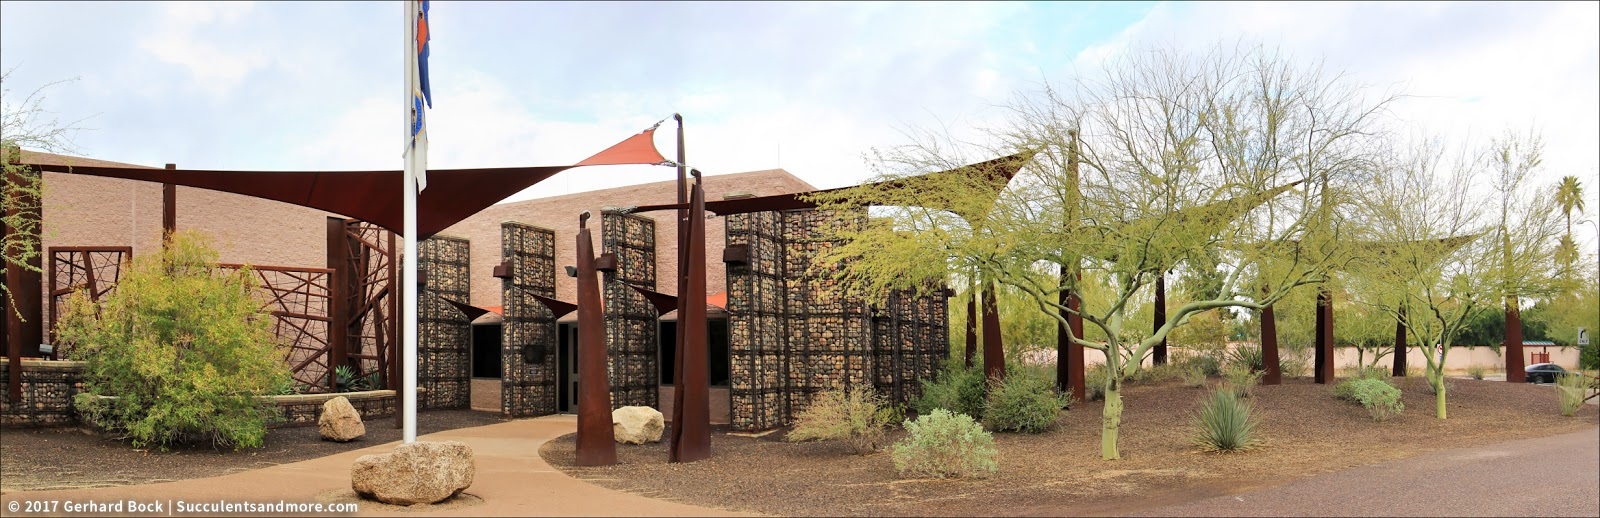 Succulents and More: Scottsdale Xeriscape Demonstration Garden ...